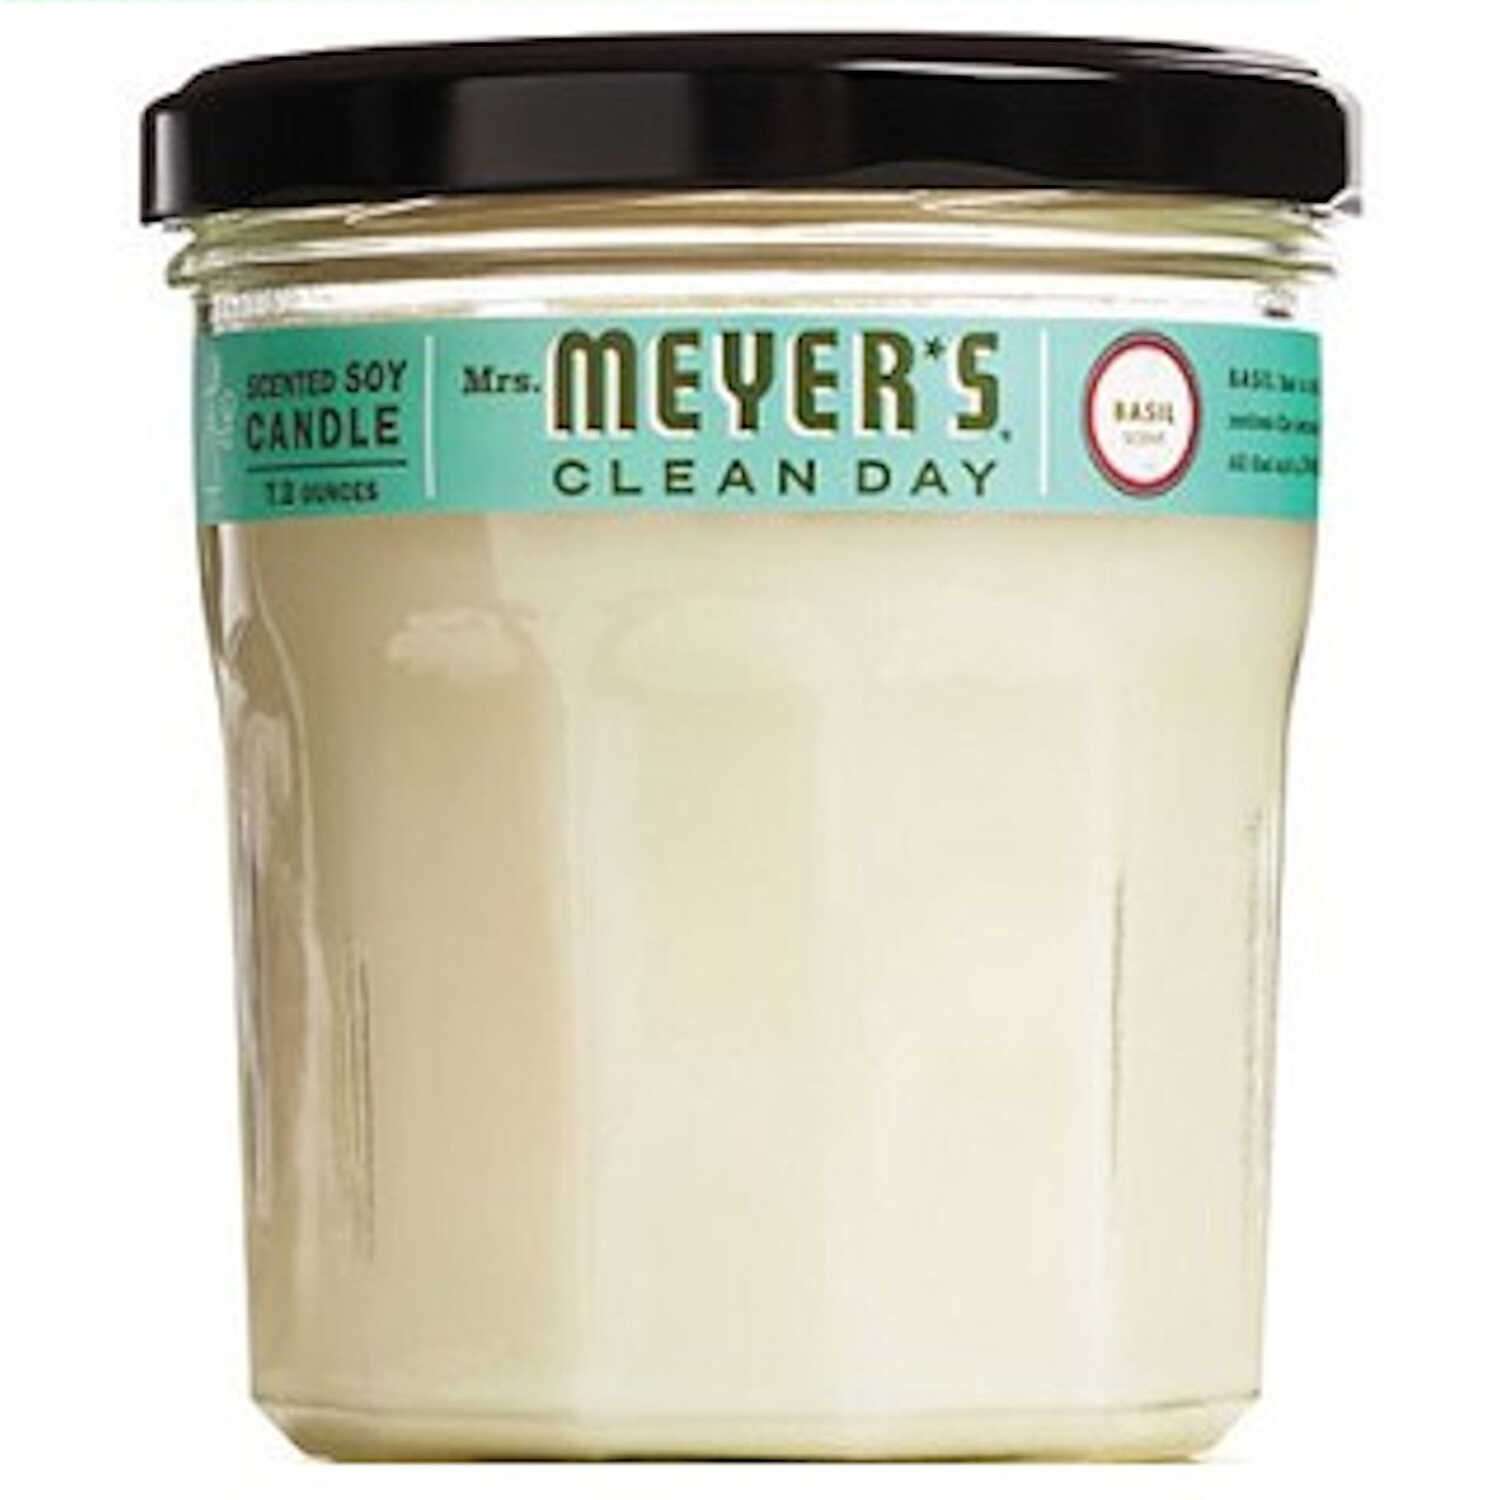 Mrs. Meyer's  Clean Day  Basil Scent Ivory  Soy  Air Freshener Candle  3.8 in. H x 2.9 in. Dia.